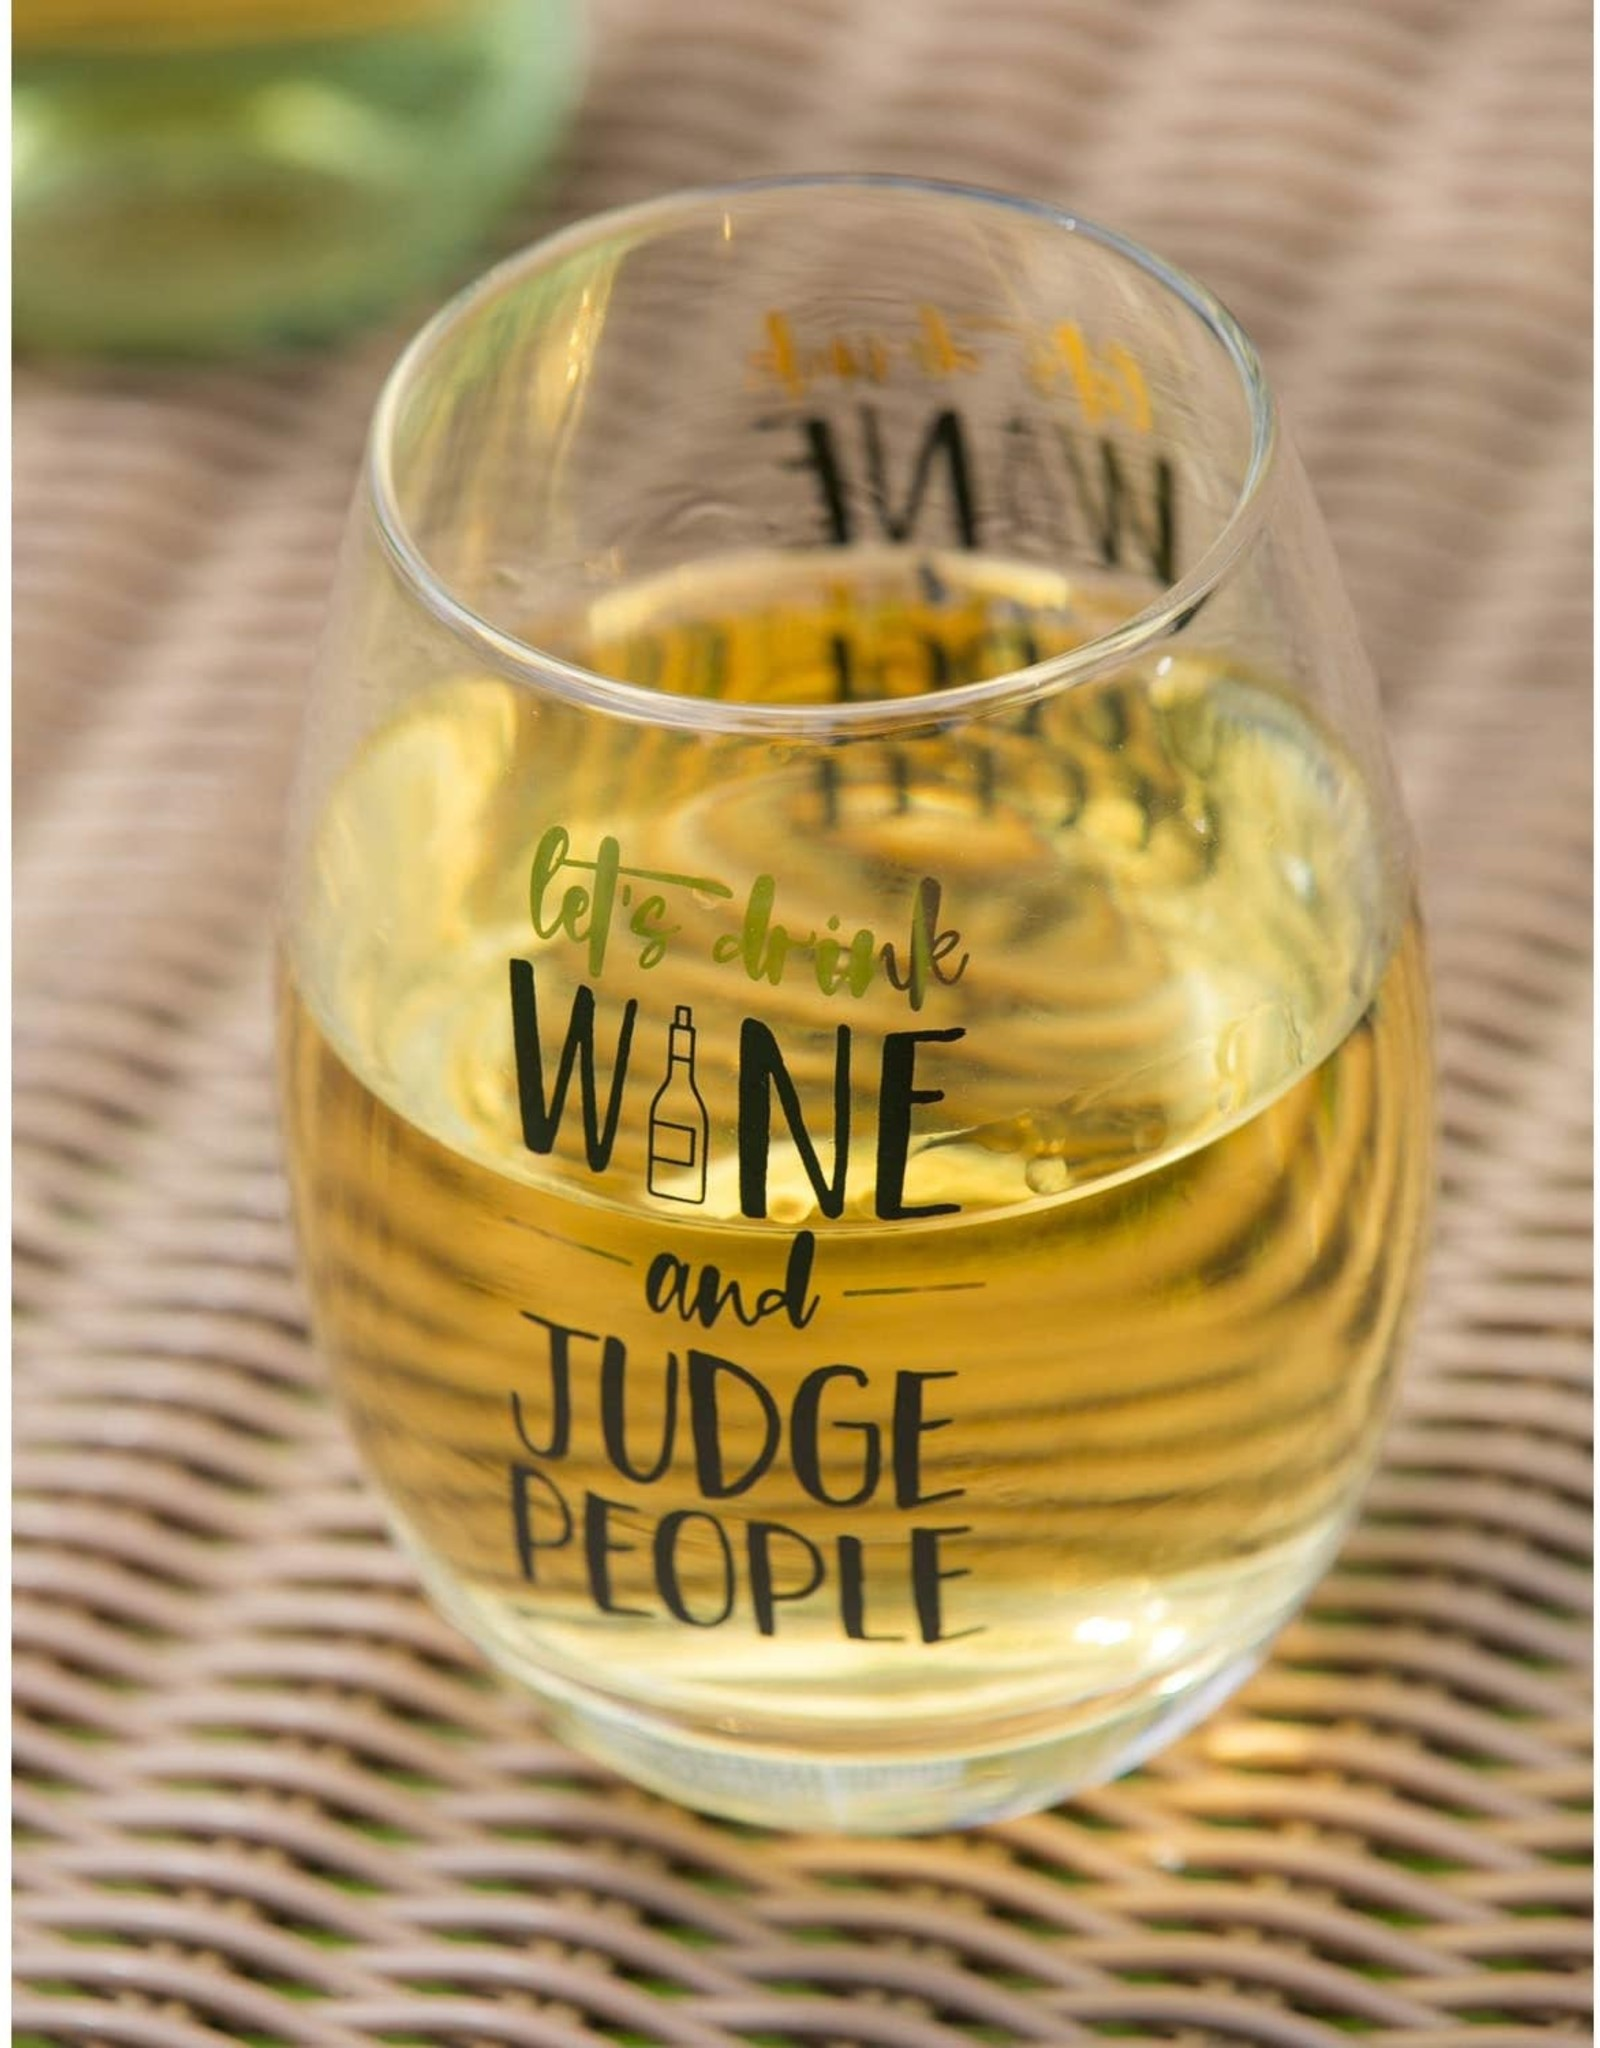 Pretty Strong Judge People Wine Glass